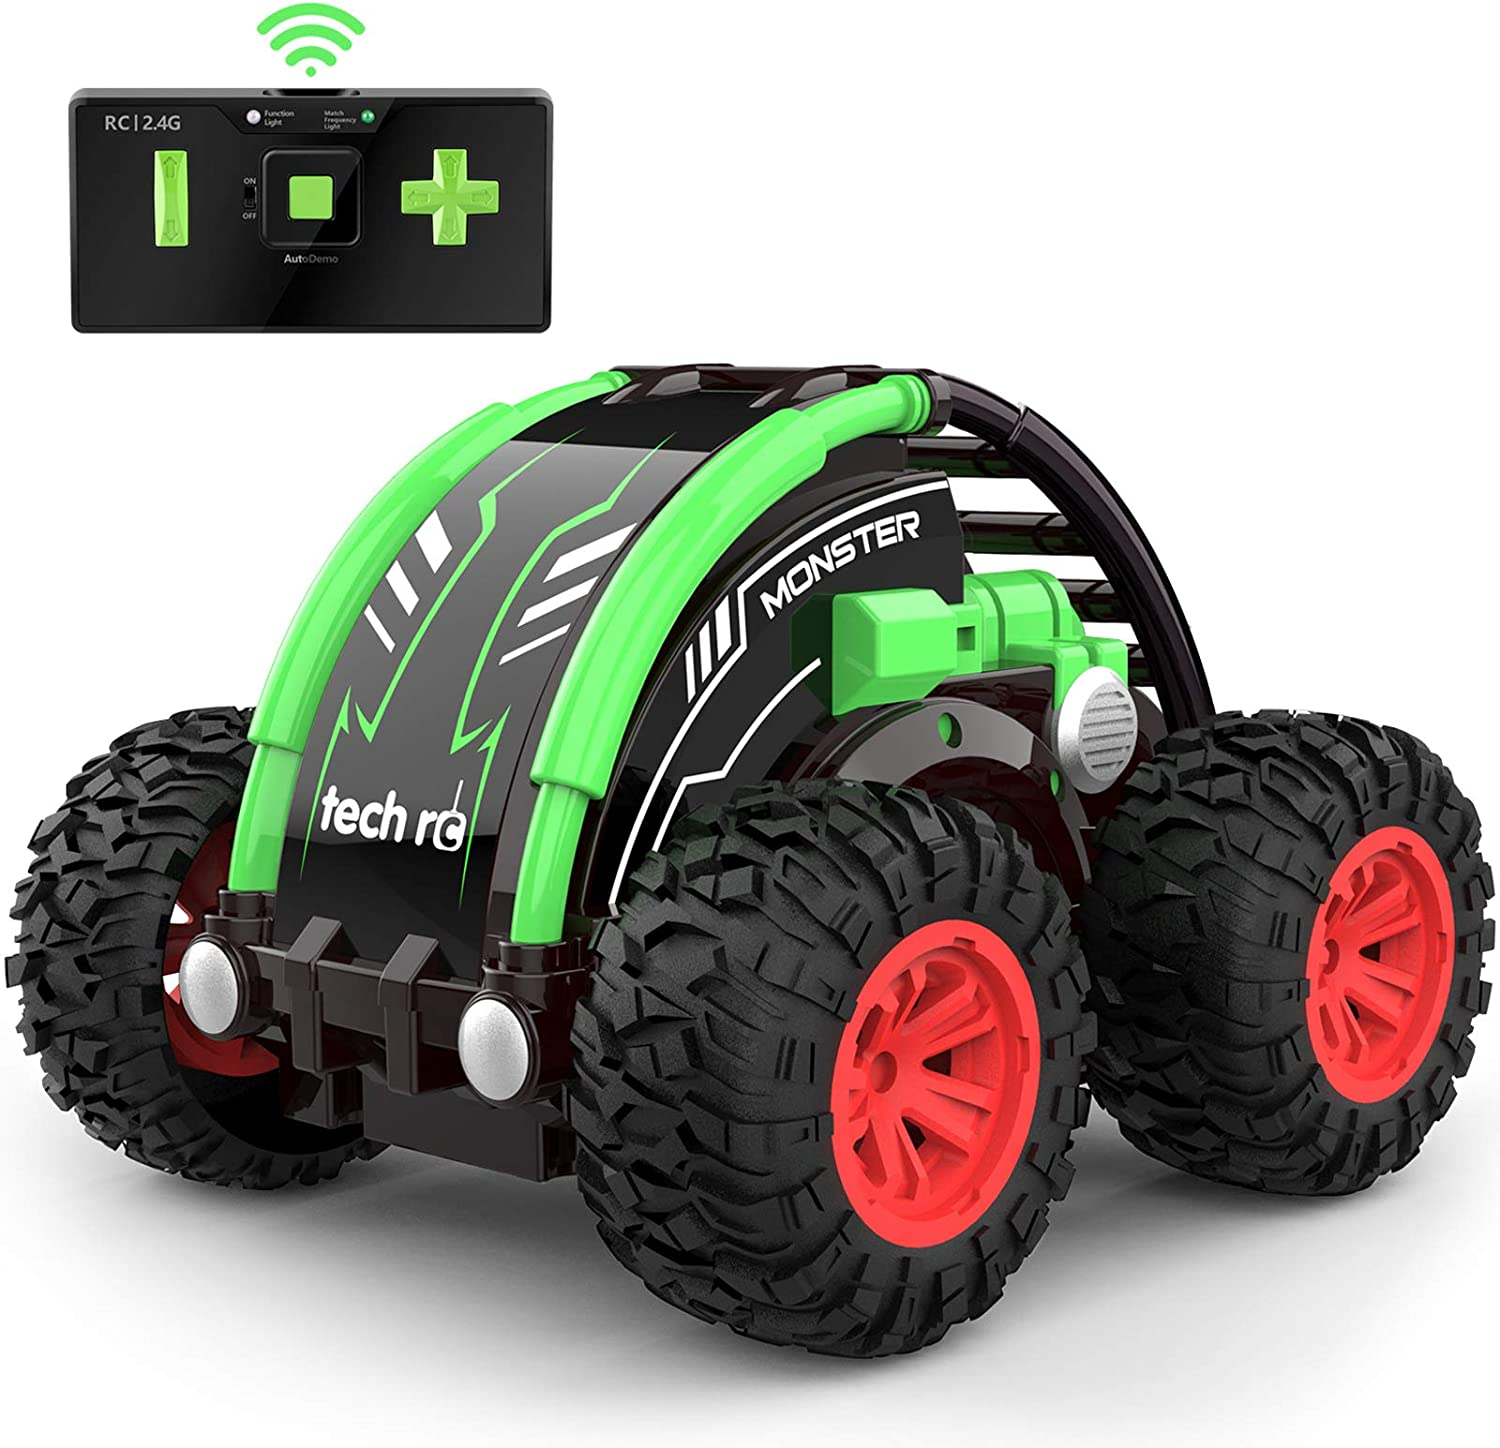 tech rc RC Car Stunt Car for Kids, 360° Spins & Flips 2.4 GHZ 4WD High Speed Remote Control Car for Boys: Toys & Games